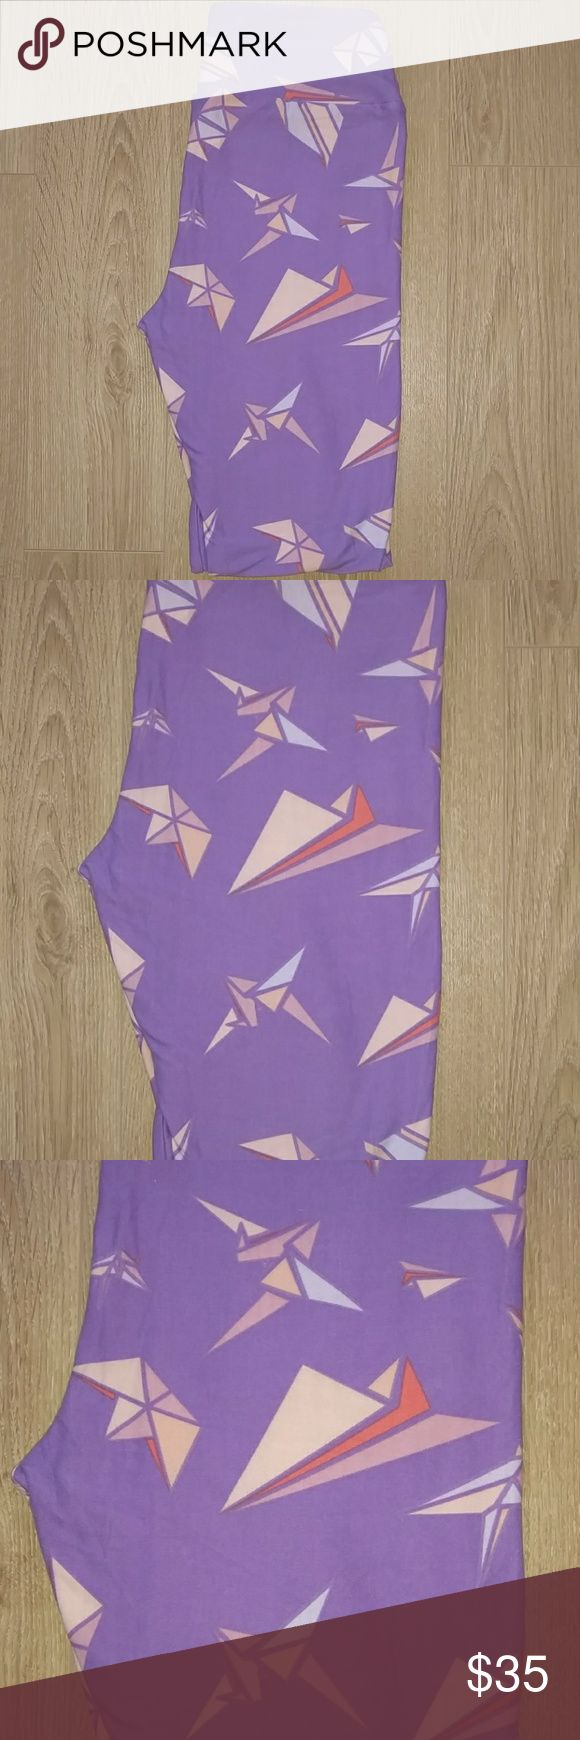 🆕 Lularoe Leggings Paper Crane Lularoe leggings OS paper cranes. Made in China. NWT.  If you make an offer please be considerate and do not low-ball. Thanks in advance! LuLaRoe Other